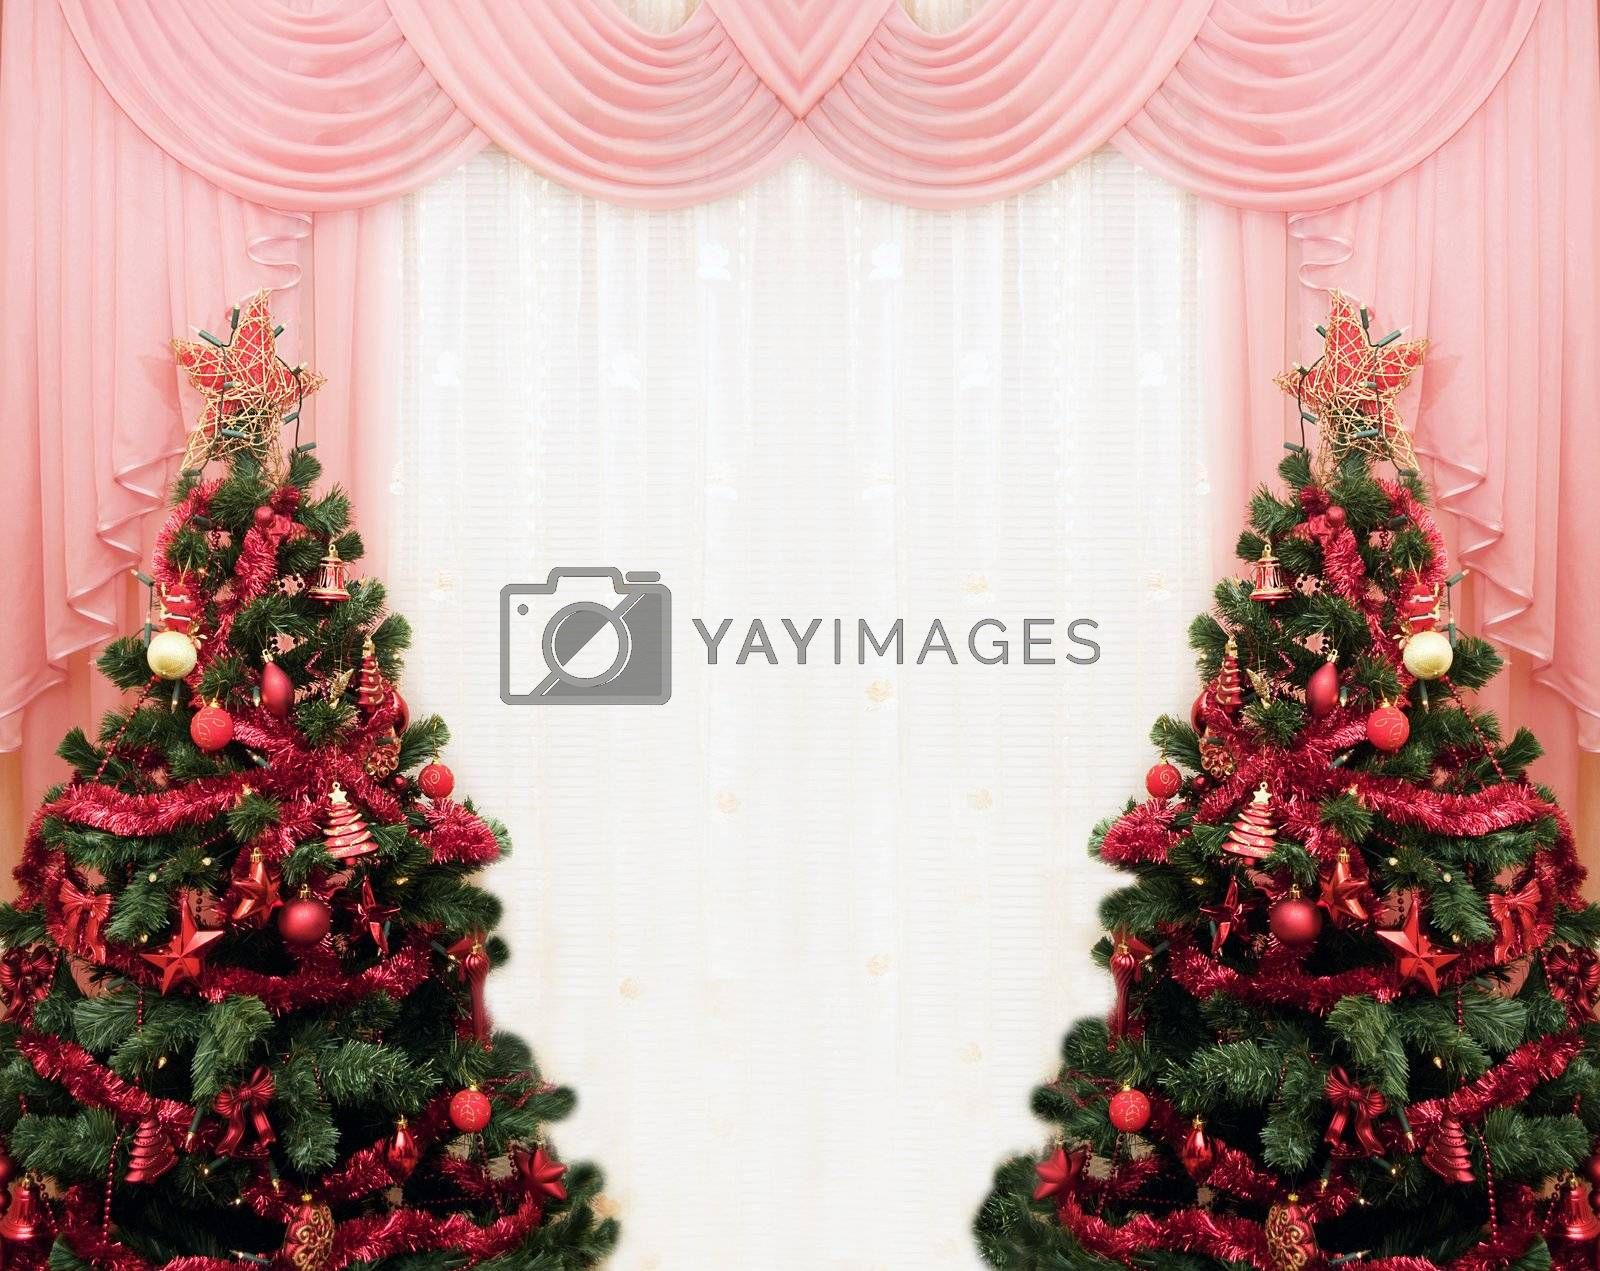 Royalty free image of Two Christmas tree and curtains by Angel_a